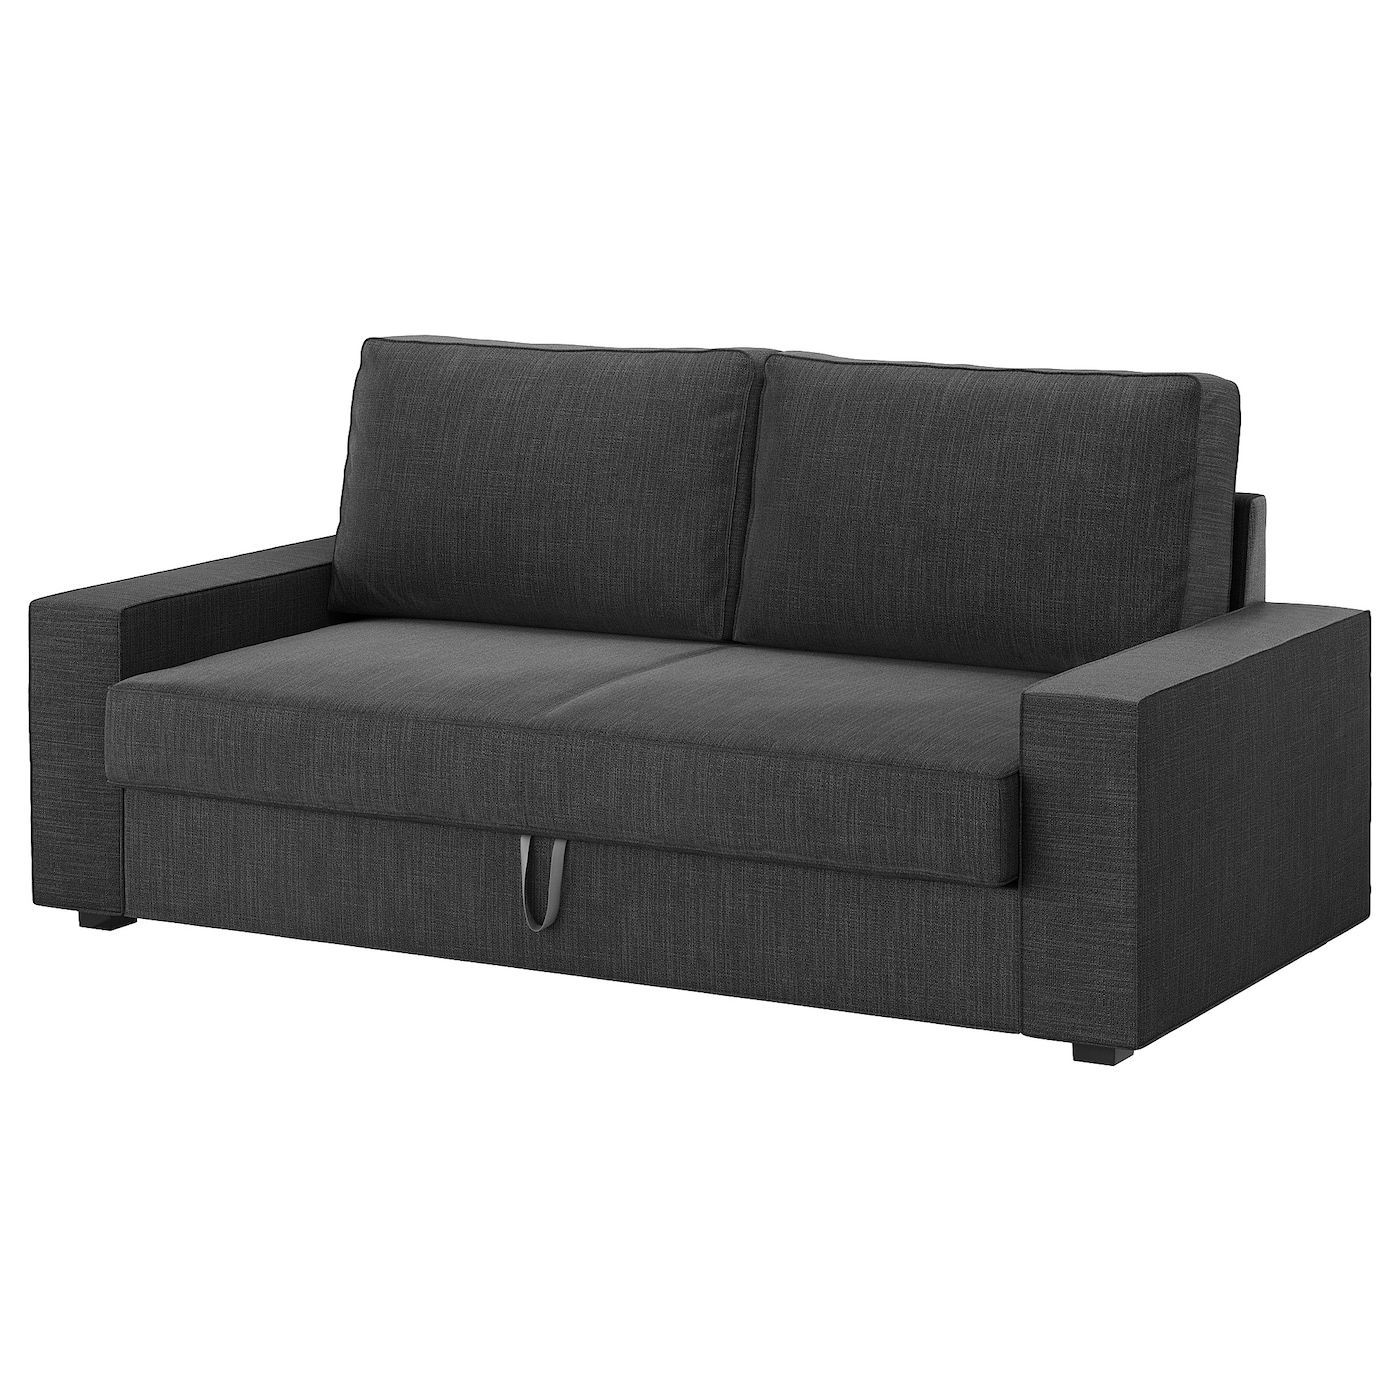 Bettsofa Coco Vilasund 3er Bettsofa Hillared Anthrazit Arbeitszimmer Guest Room